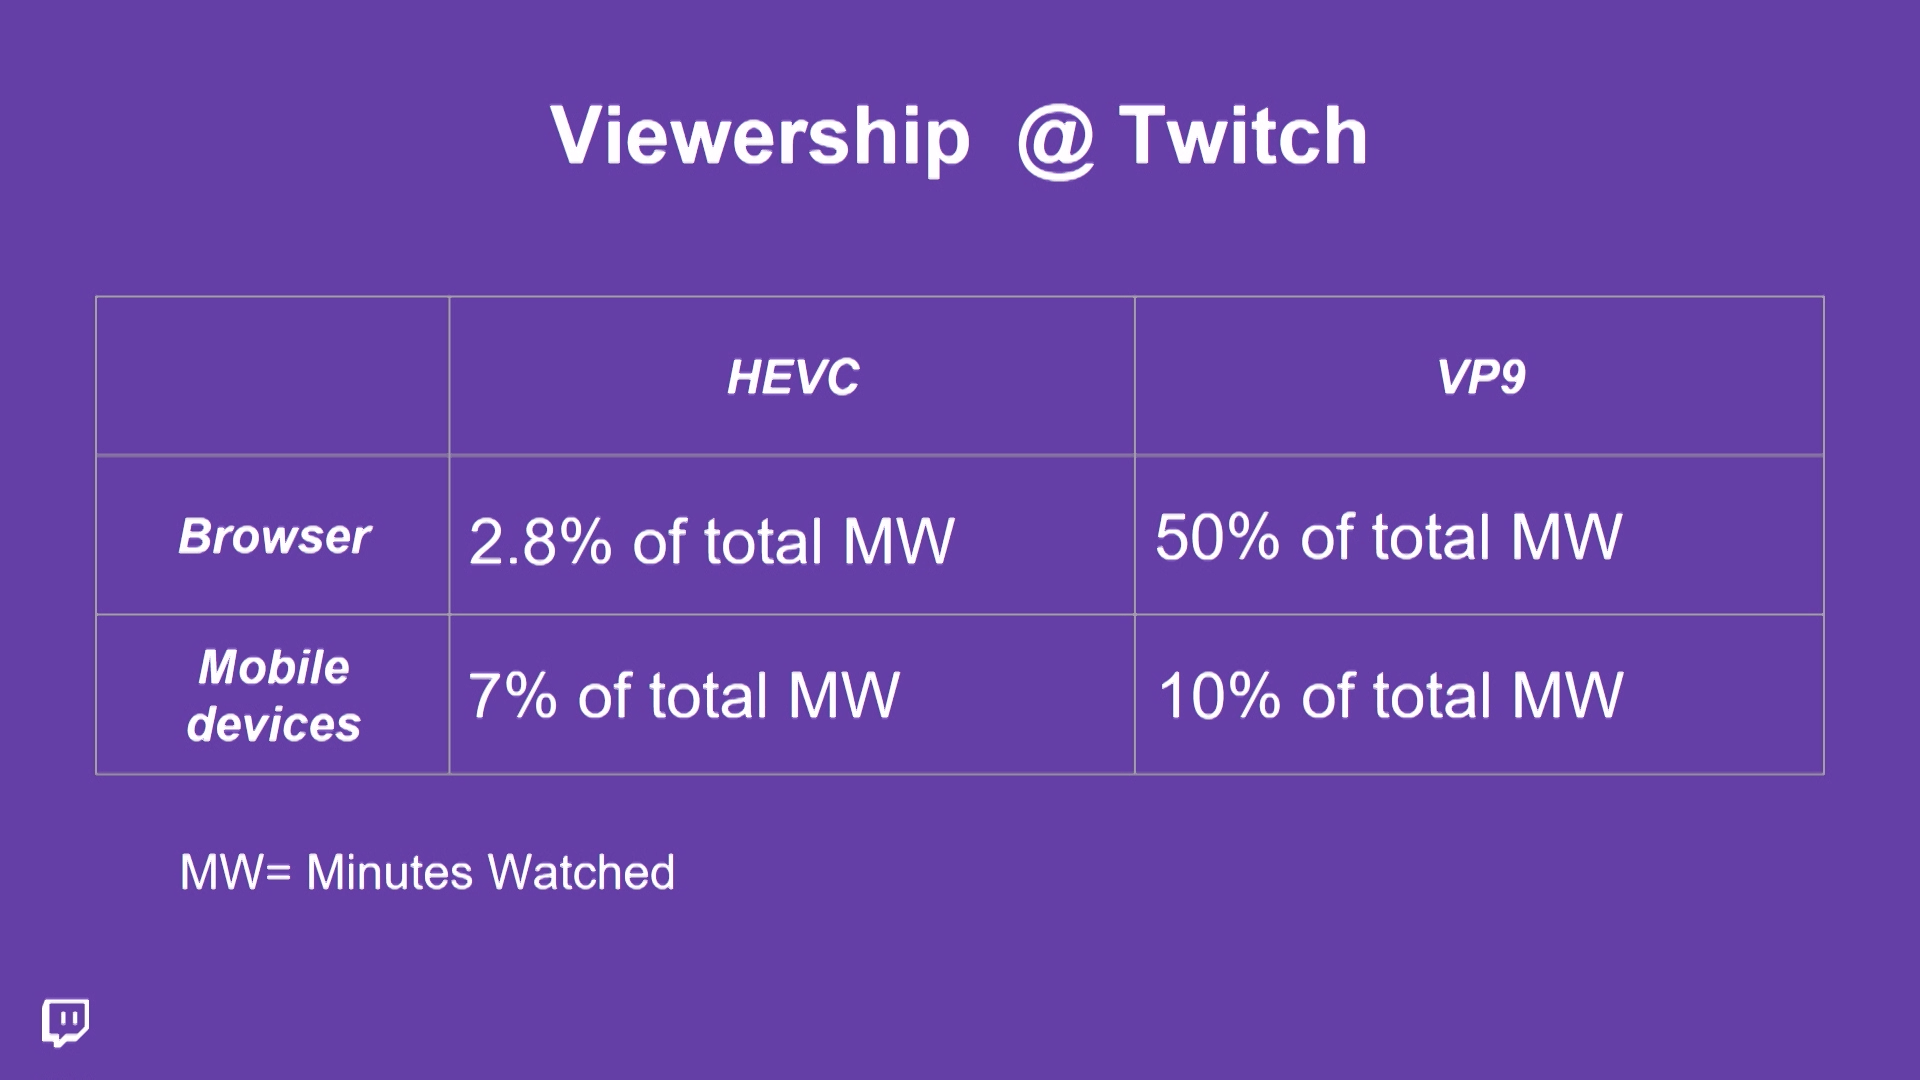 Viewership at Twitch